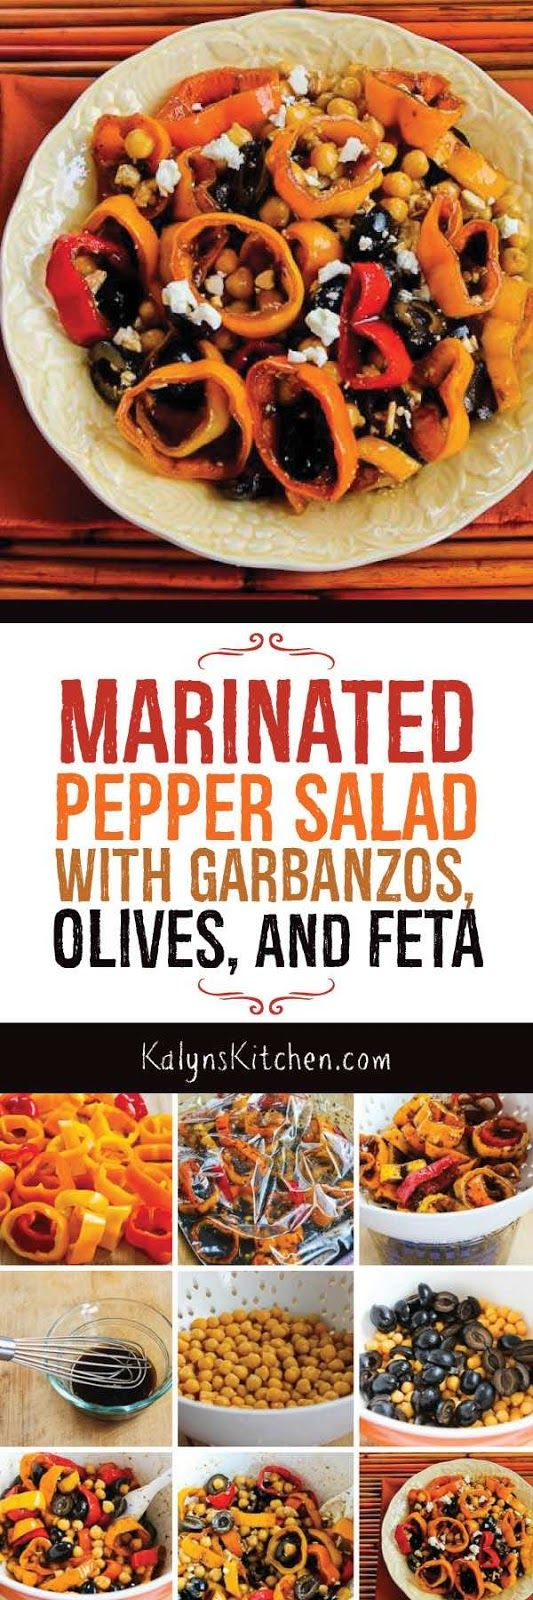 Marinated Pepper Salad with Garbanzos, Olives, and Feta